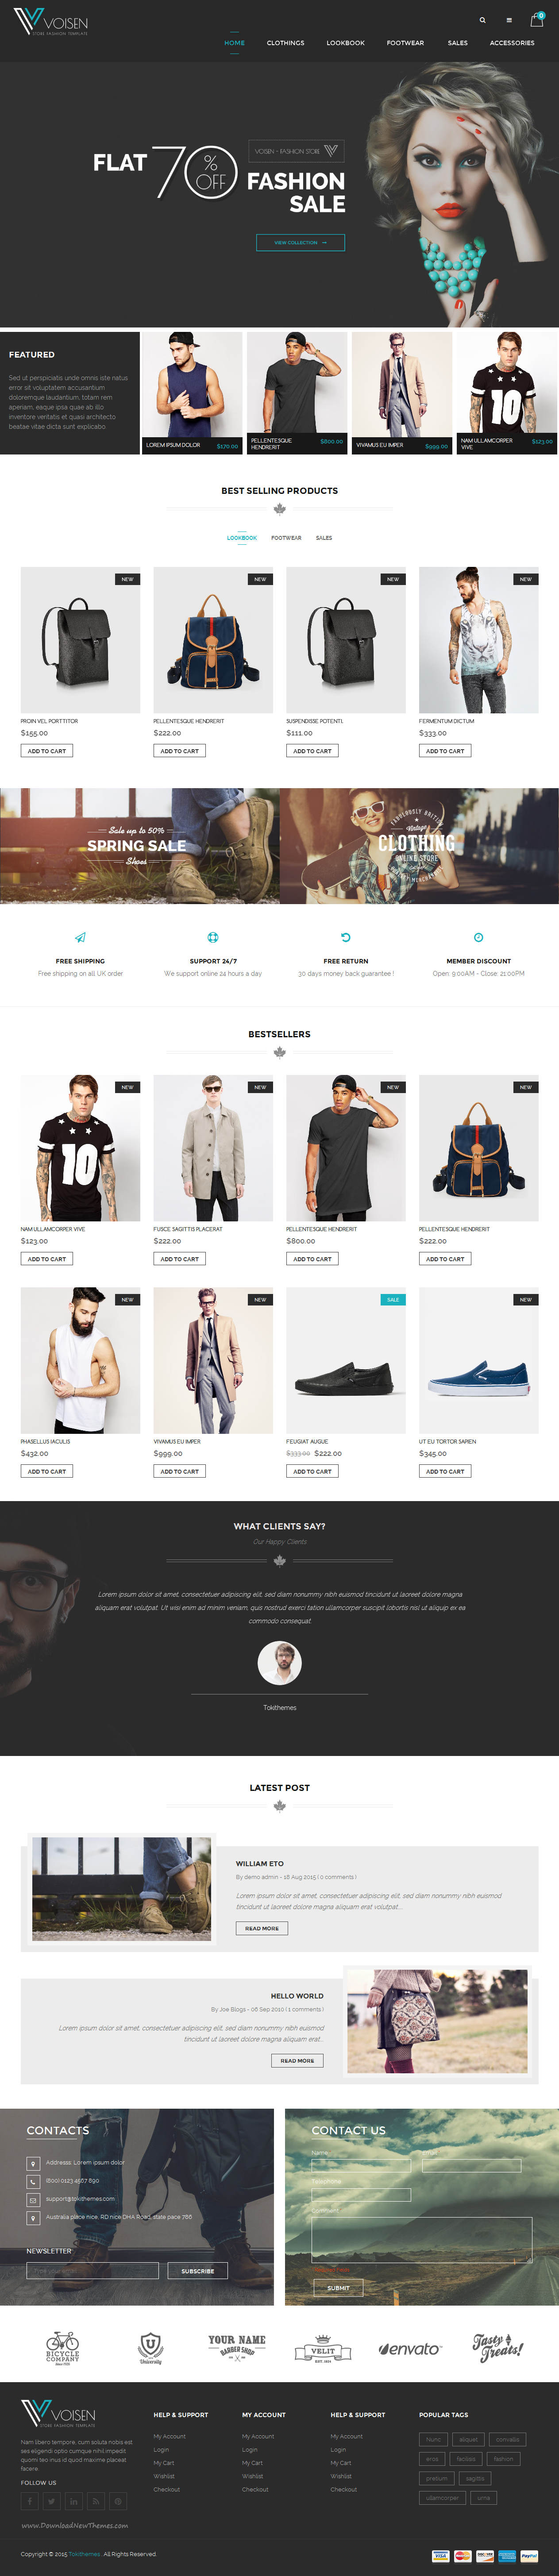 Voisen Responsive #Magento Fashion Template is designed for fashion, high-tech, electronics, mobiles, laptops stores.Great as a starting point for your custom projects. Voisen is looking good with blue color and 2 homepage layouts. Built using Bootstrap 3 framework and integrated with many magento extensions. #eCommerce #website #template